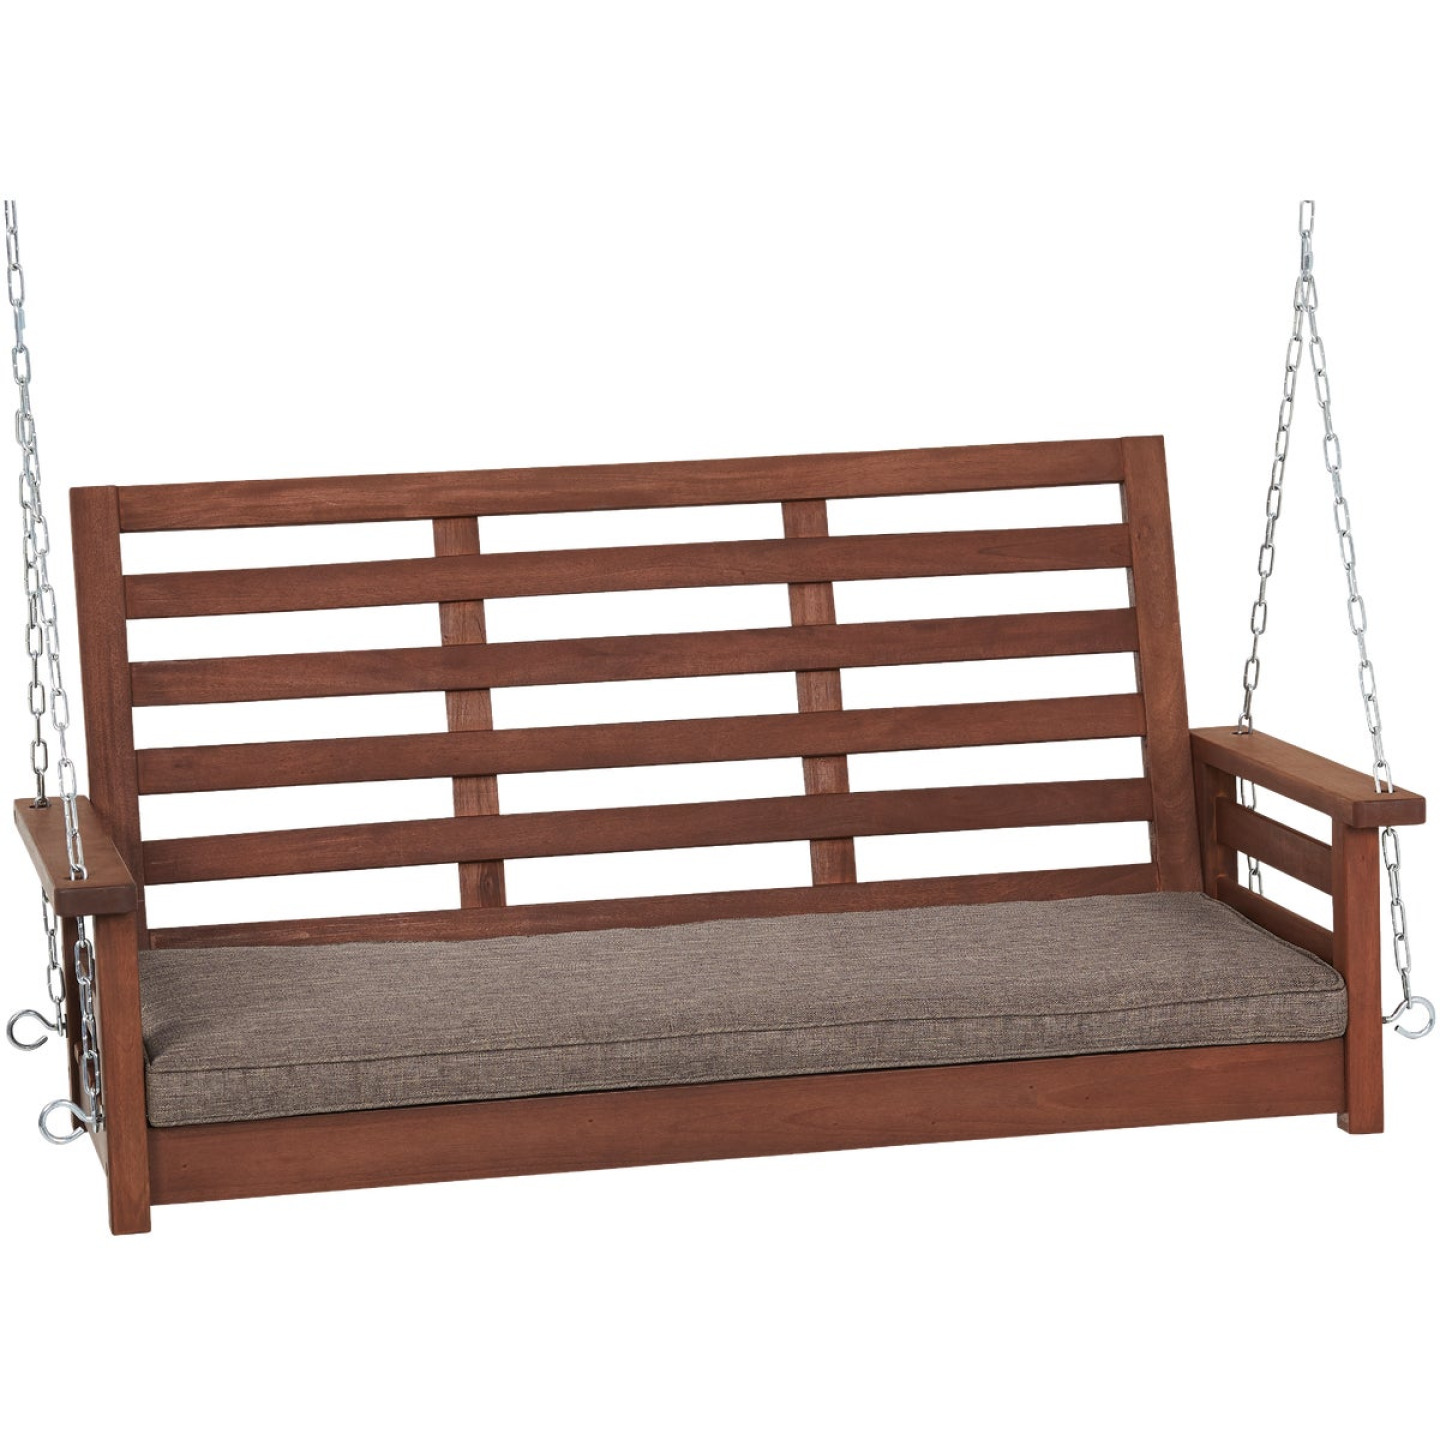 Jack Post 51 In. W. x 23.5 In. H. x 24 In. D. Indonesian Hardwood Porch Swing Image 1